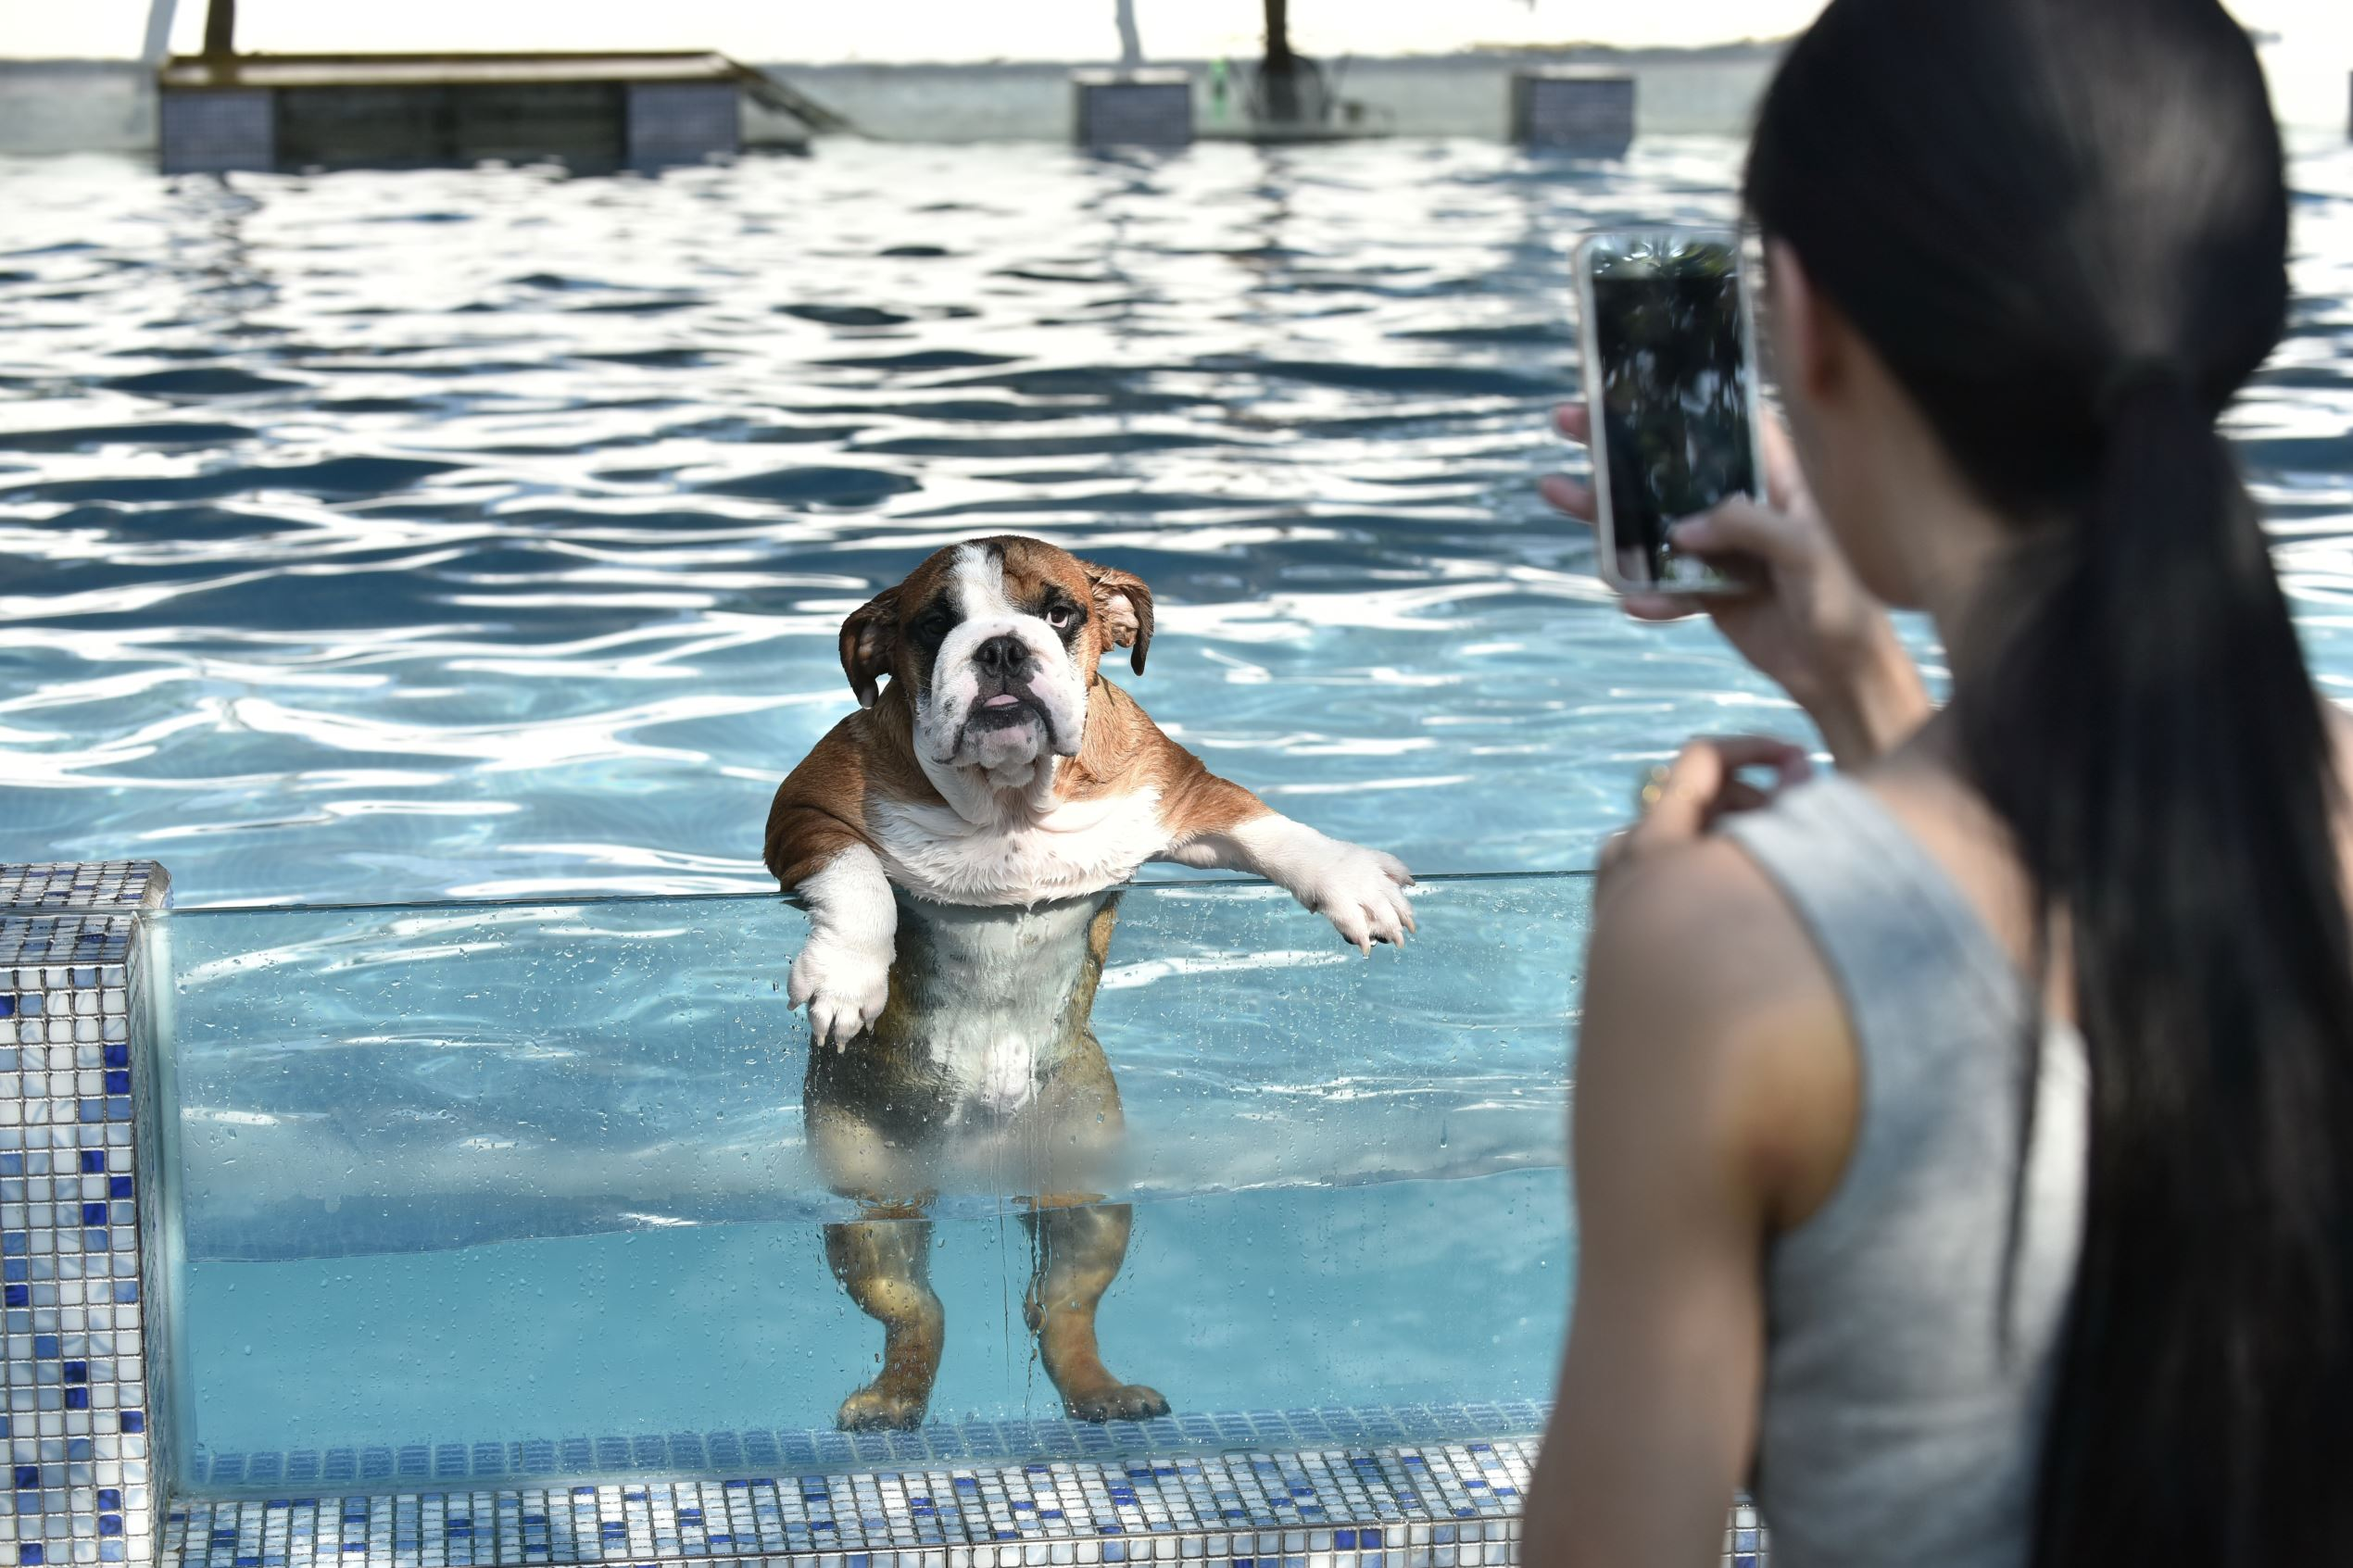 Слайд 17 из 67: An owner takes a picture of her dog as it climbs up on a glass panel while swimming at a pool for dogs in Chengdu, Sichuan Province, China, August 16, 2016.